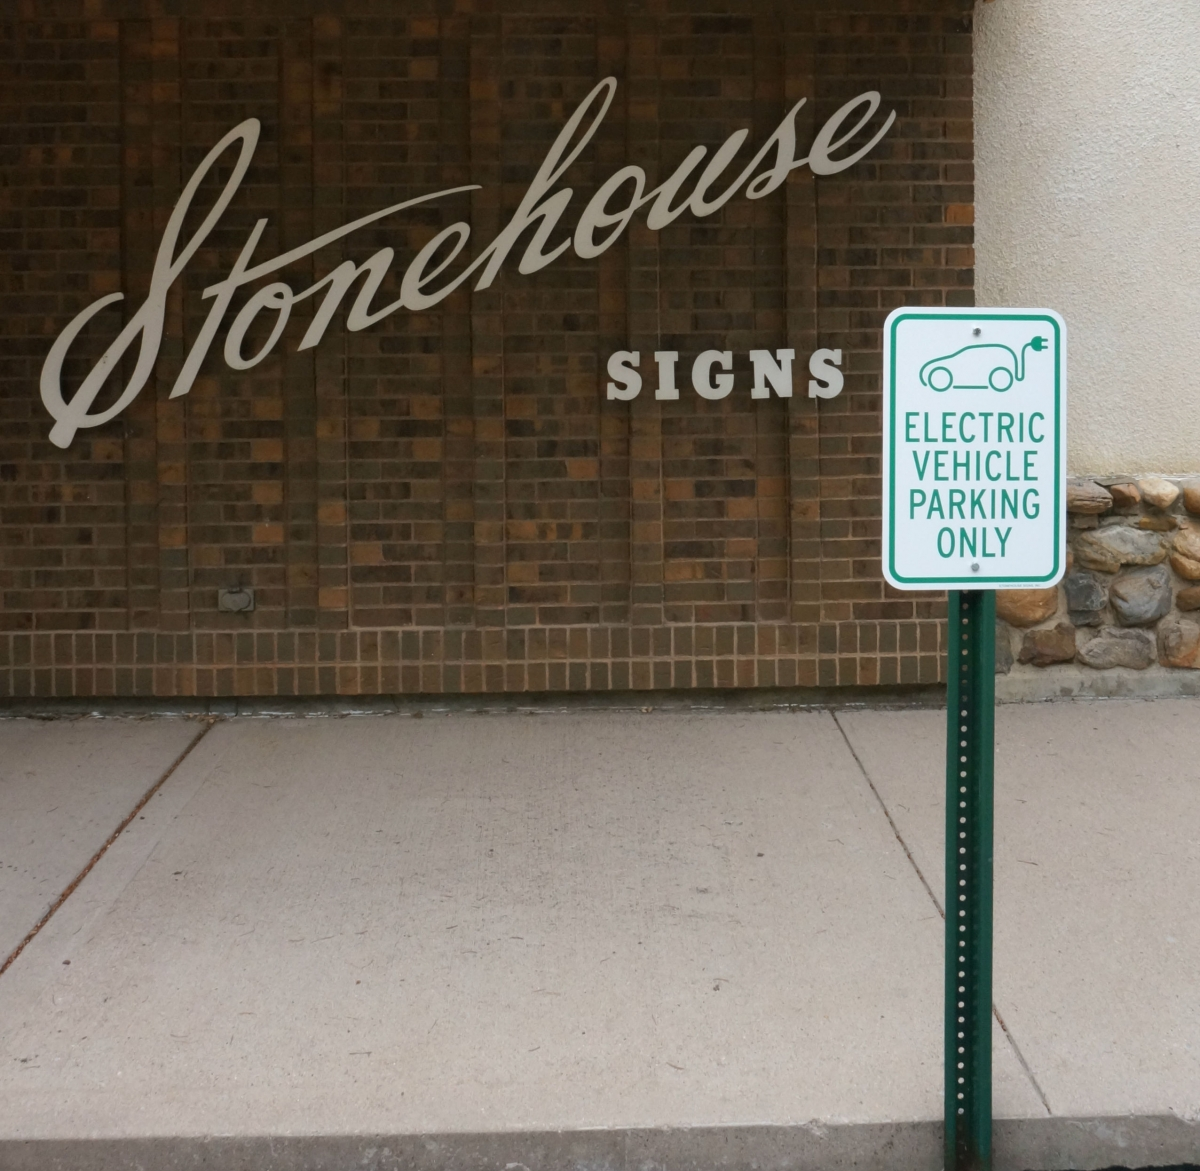 Stonehouse Signs Hybrid / Electric Vehicle Parking Only Reserved Parking Signs